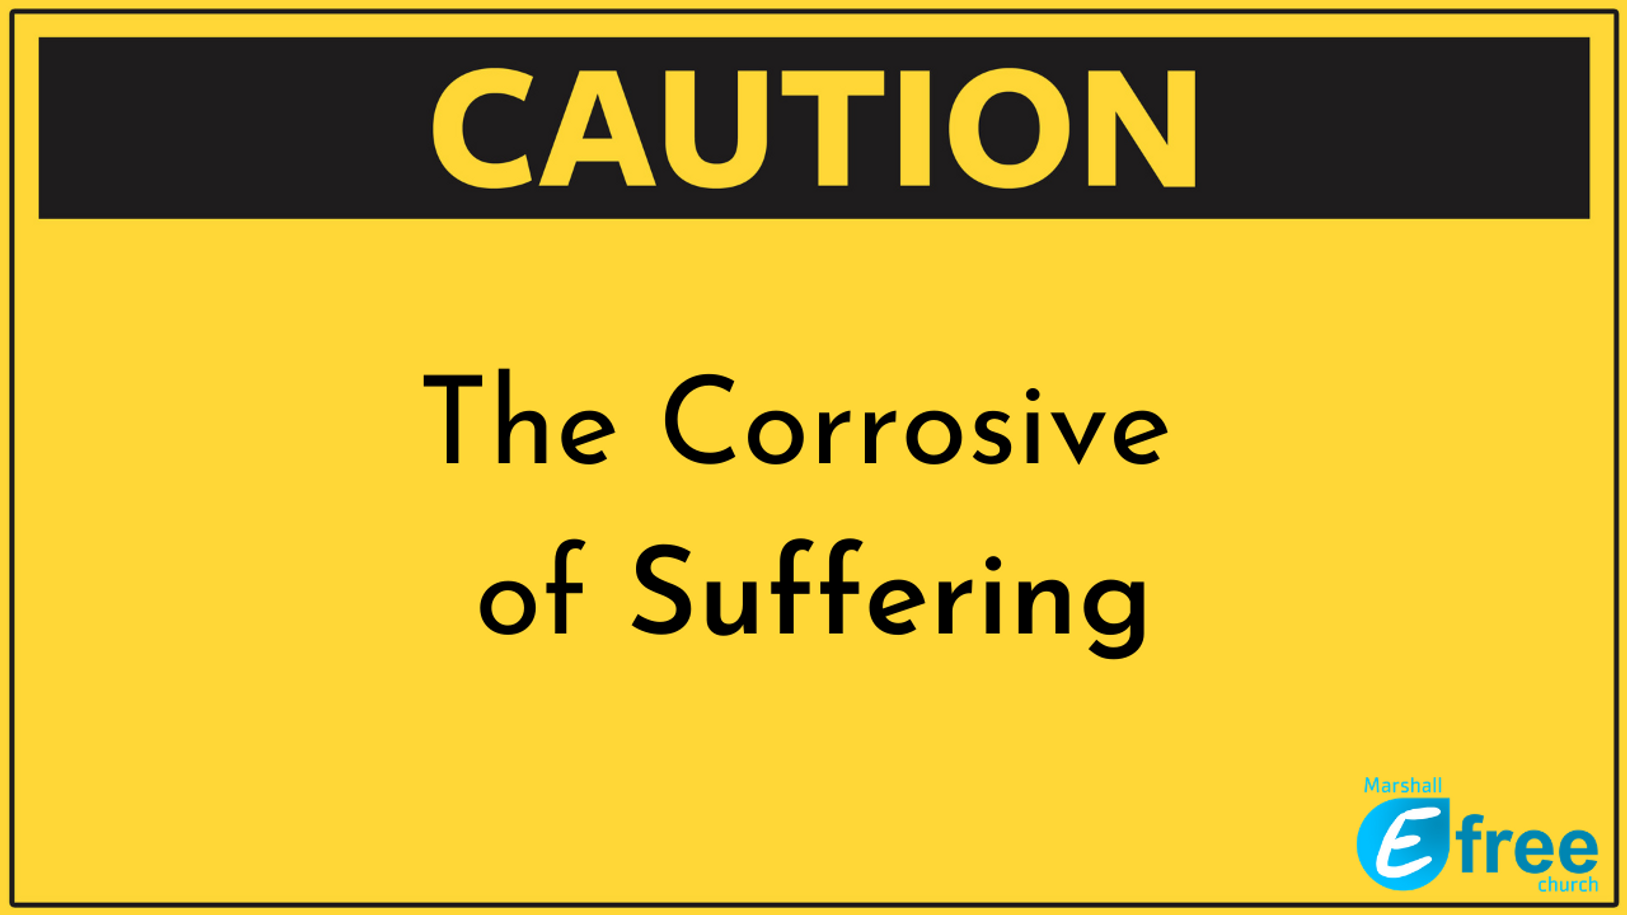 The Corrosive of Suffering